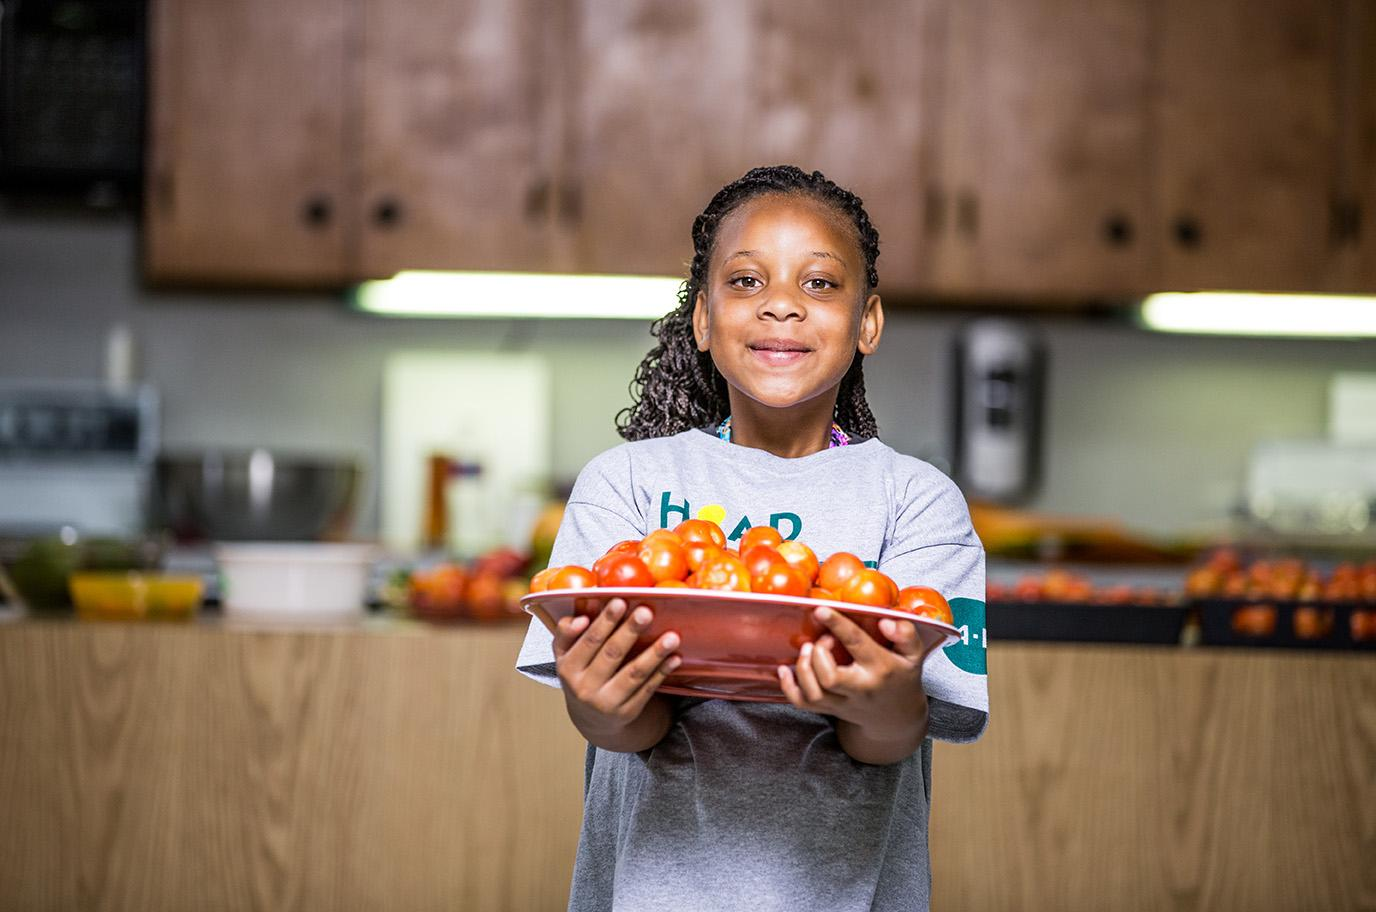 child carrying plate of vegetables